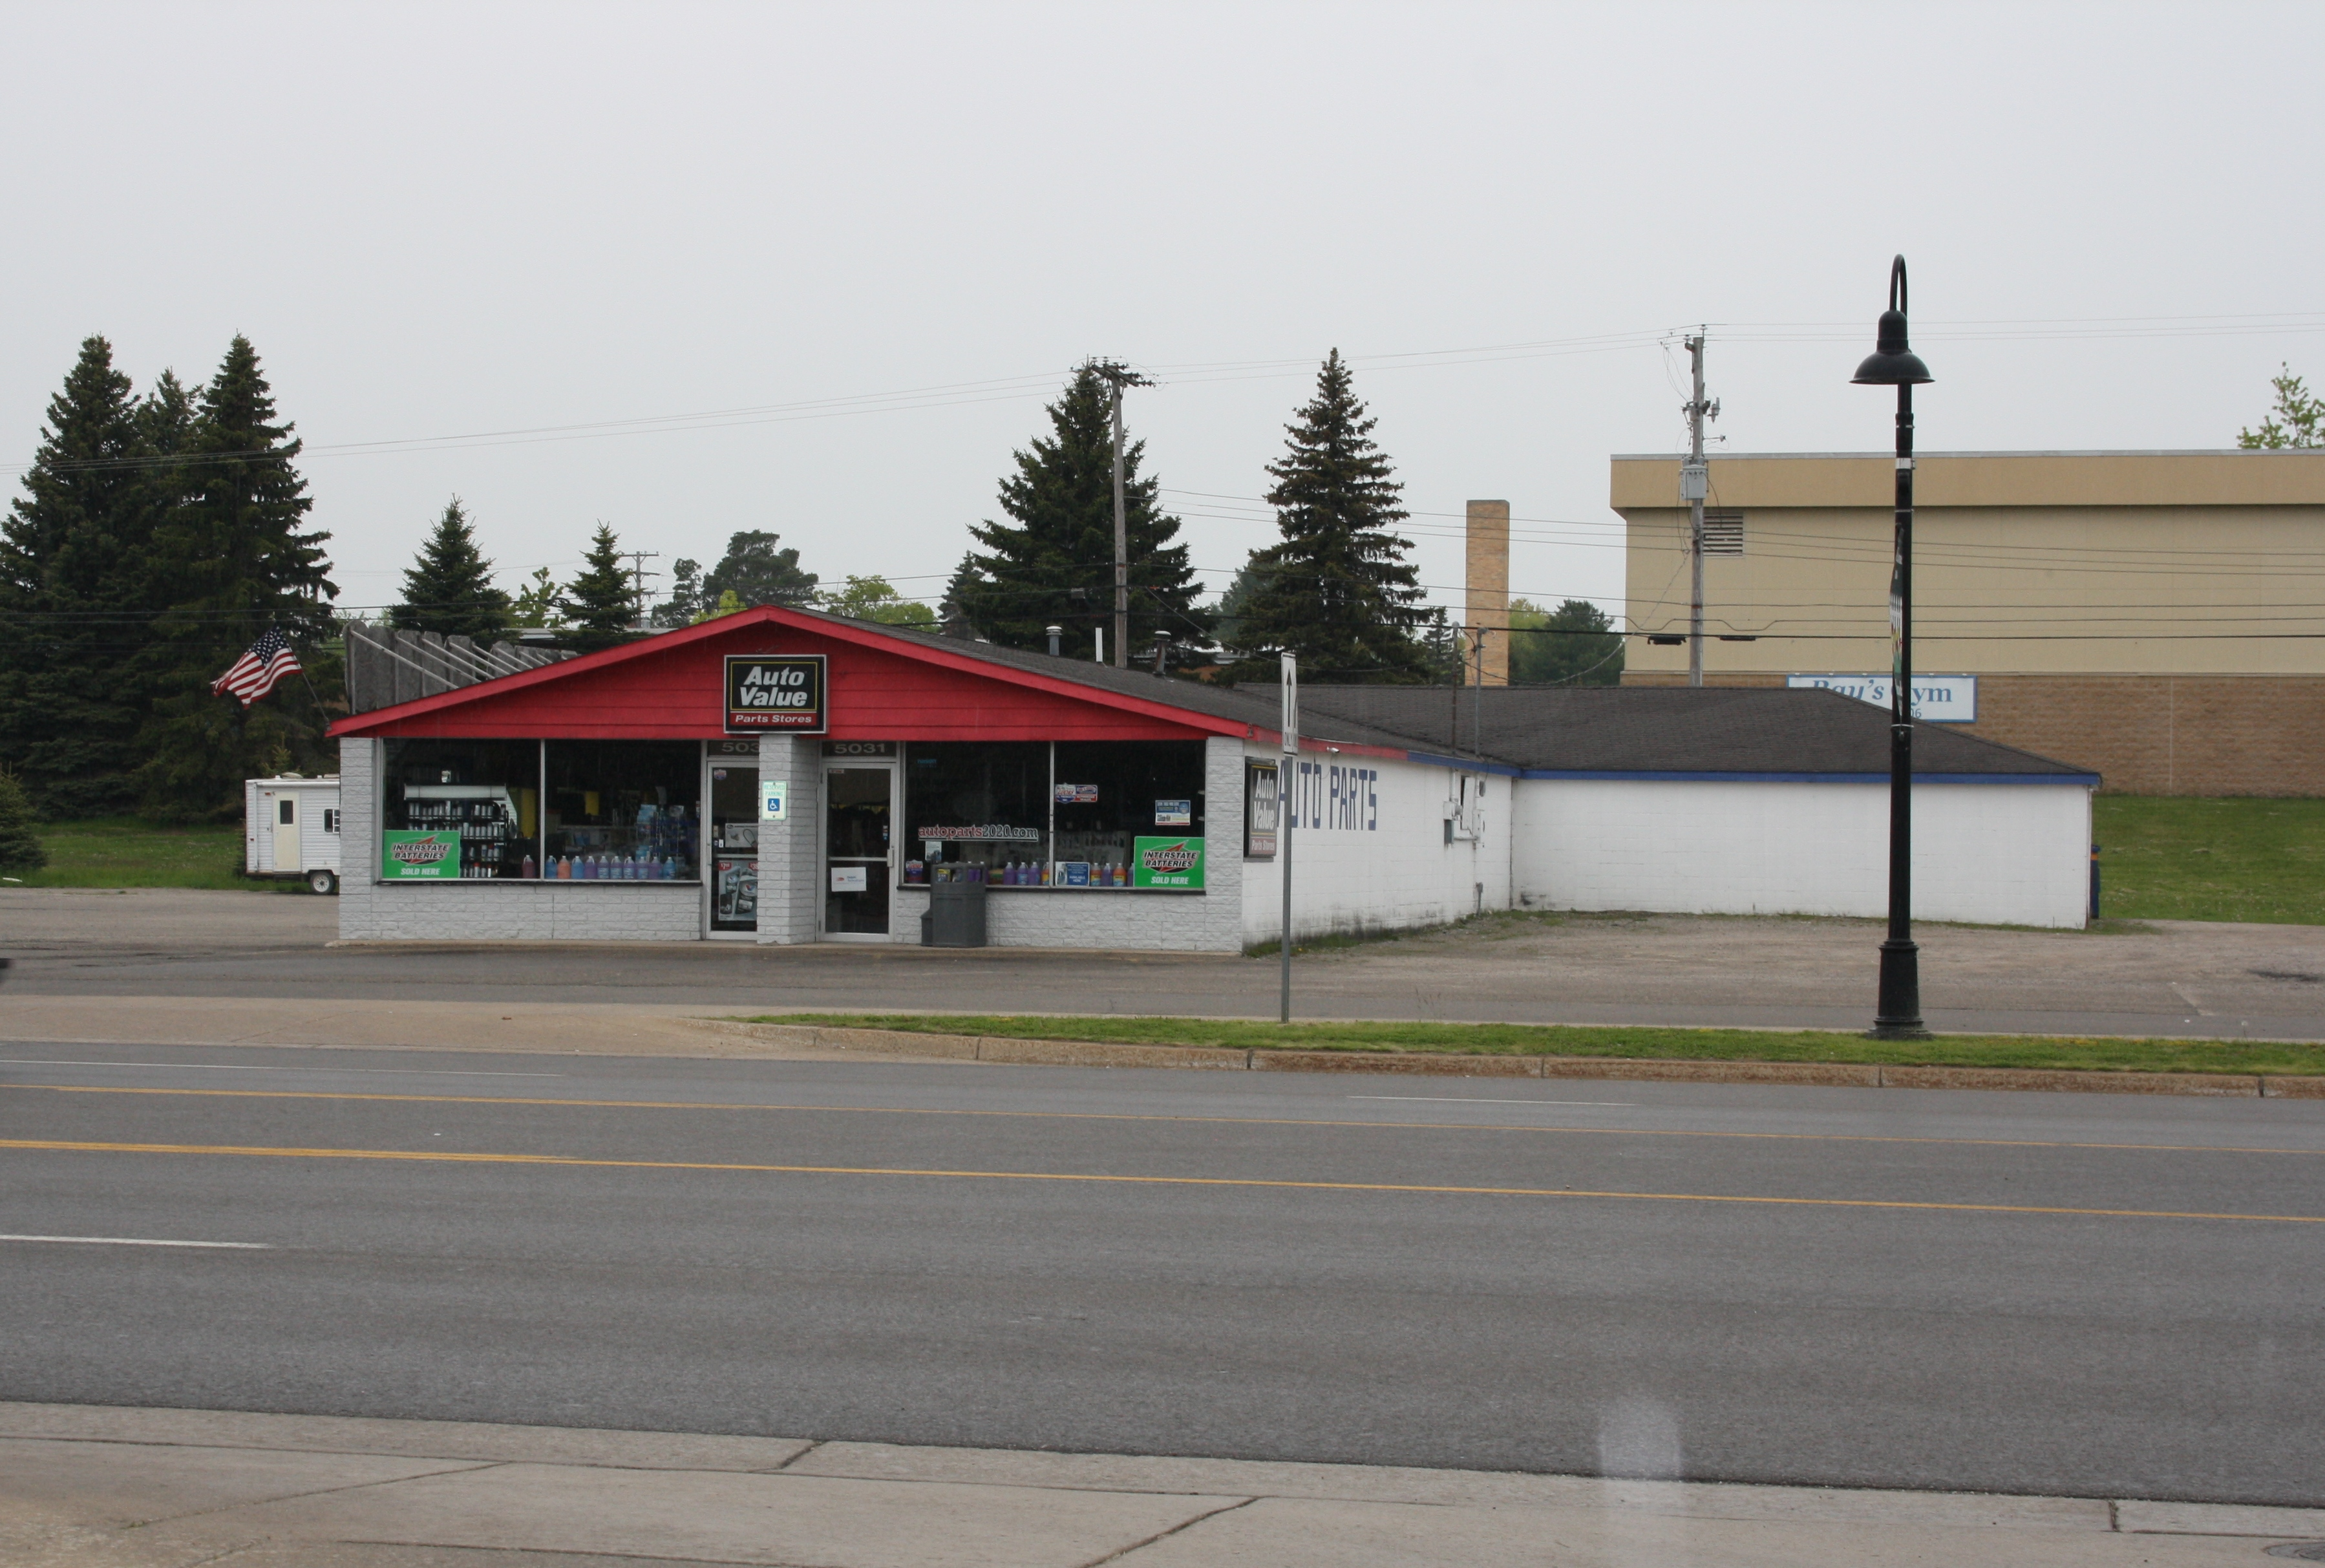 Commercial Storefront located on US 23 in Downtown Oscoda with